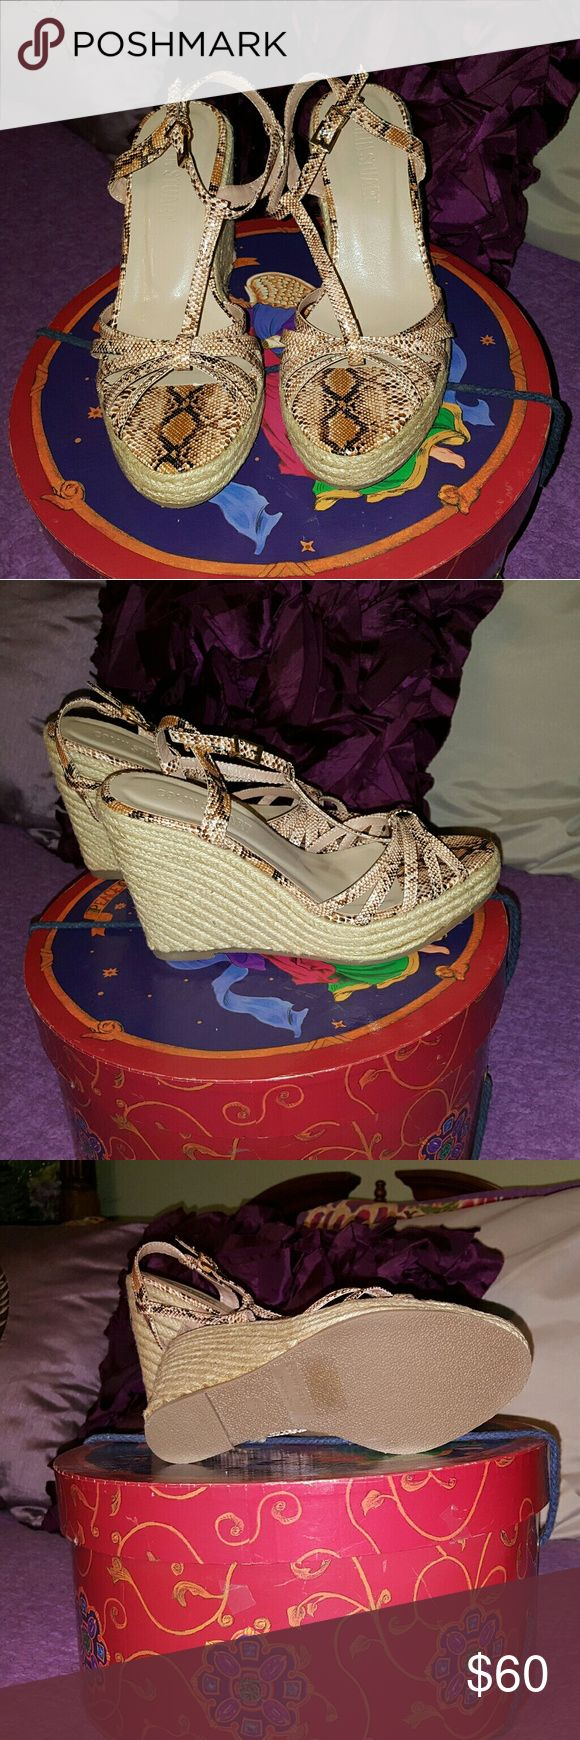 Colin Stuart Snake Print wedge heels Snake Print Colin Stuart wedge heels. Never worn. No box. Size 6.5 Colin Stuart Shoes Wedges